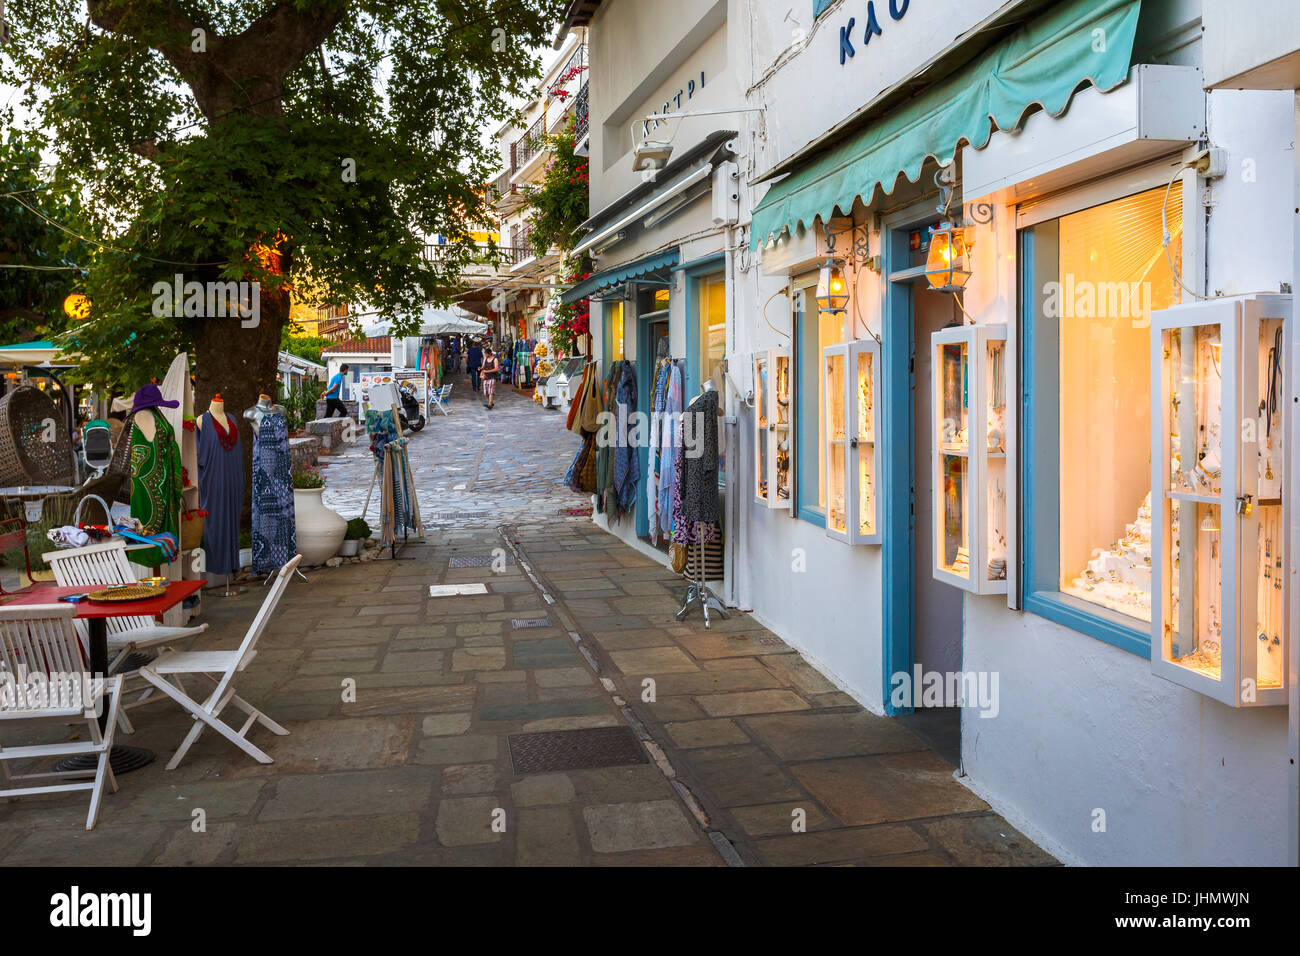 Traditional architecture with shop in Skopelos town, Greece. - Stock Image